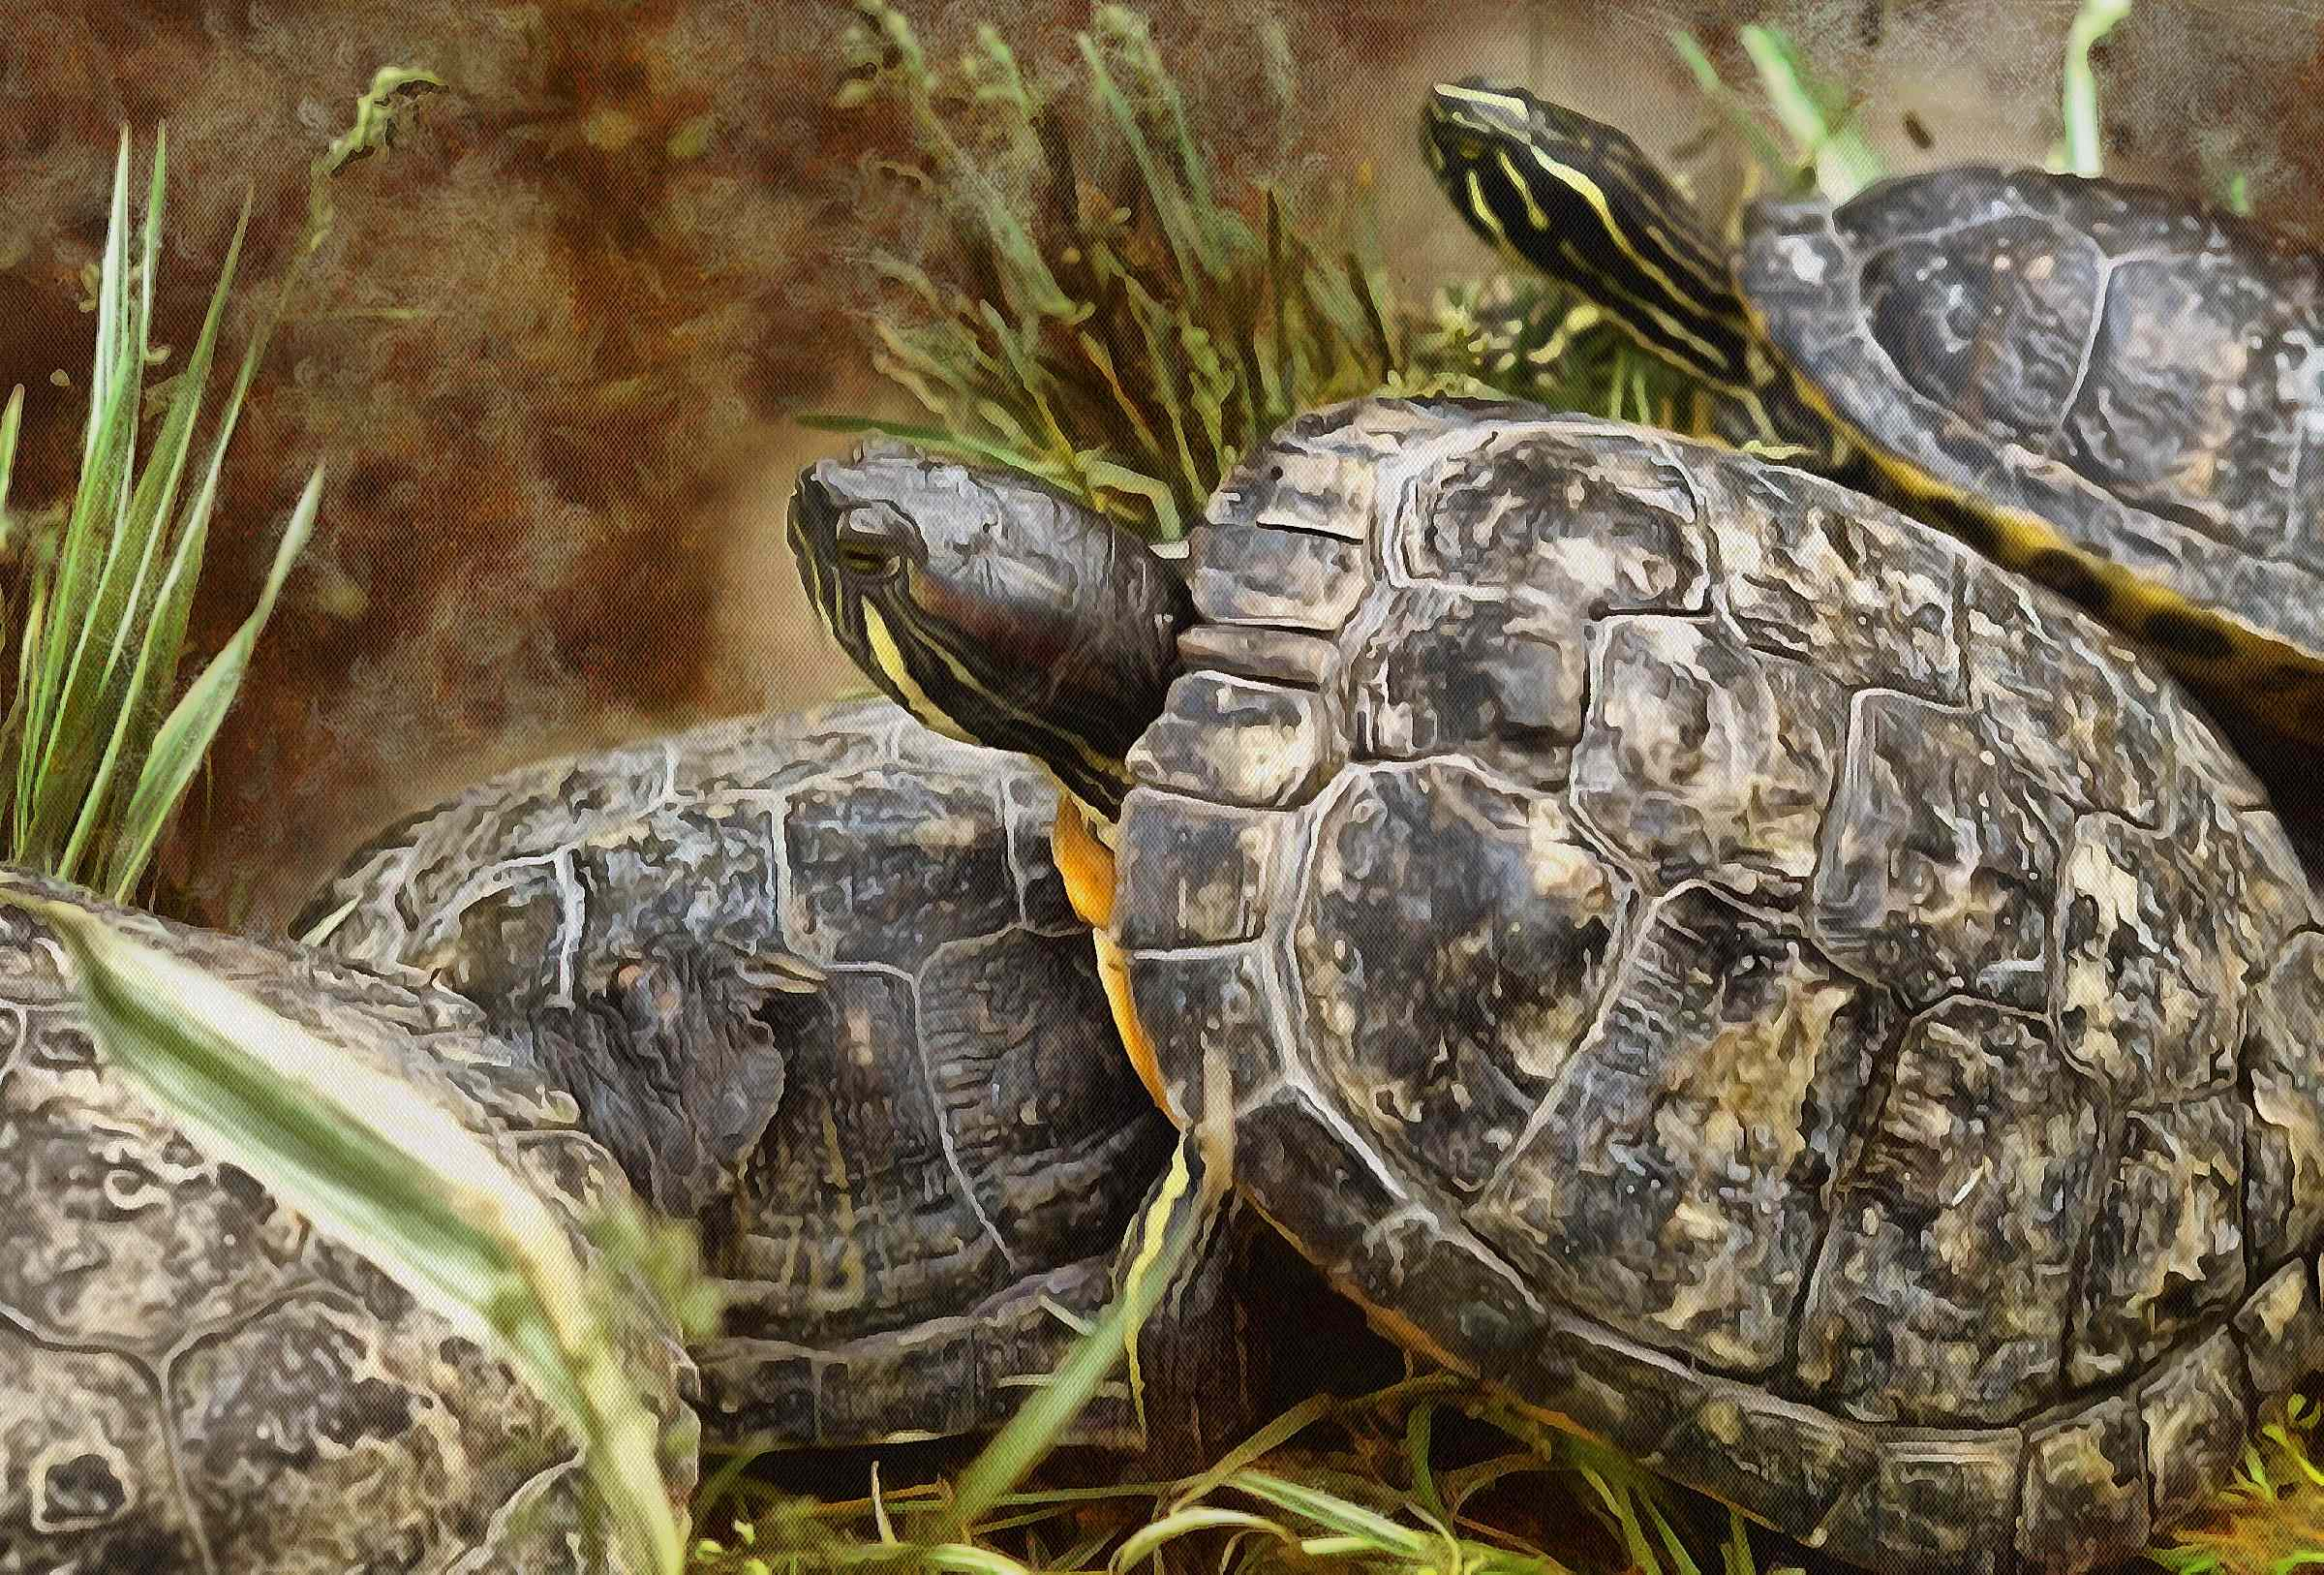 Free Tortoise images, Turtle free images,  – Turtle public domain images, Tortoise free , Turtle stock free images, free images turtles, tortoise public domain images!